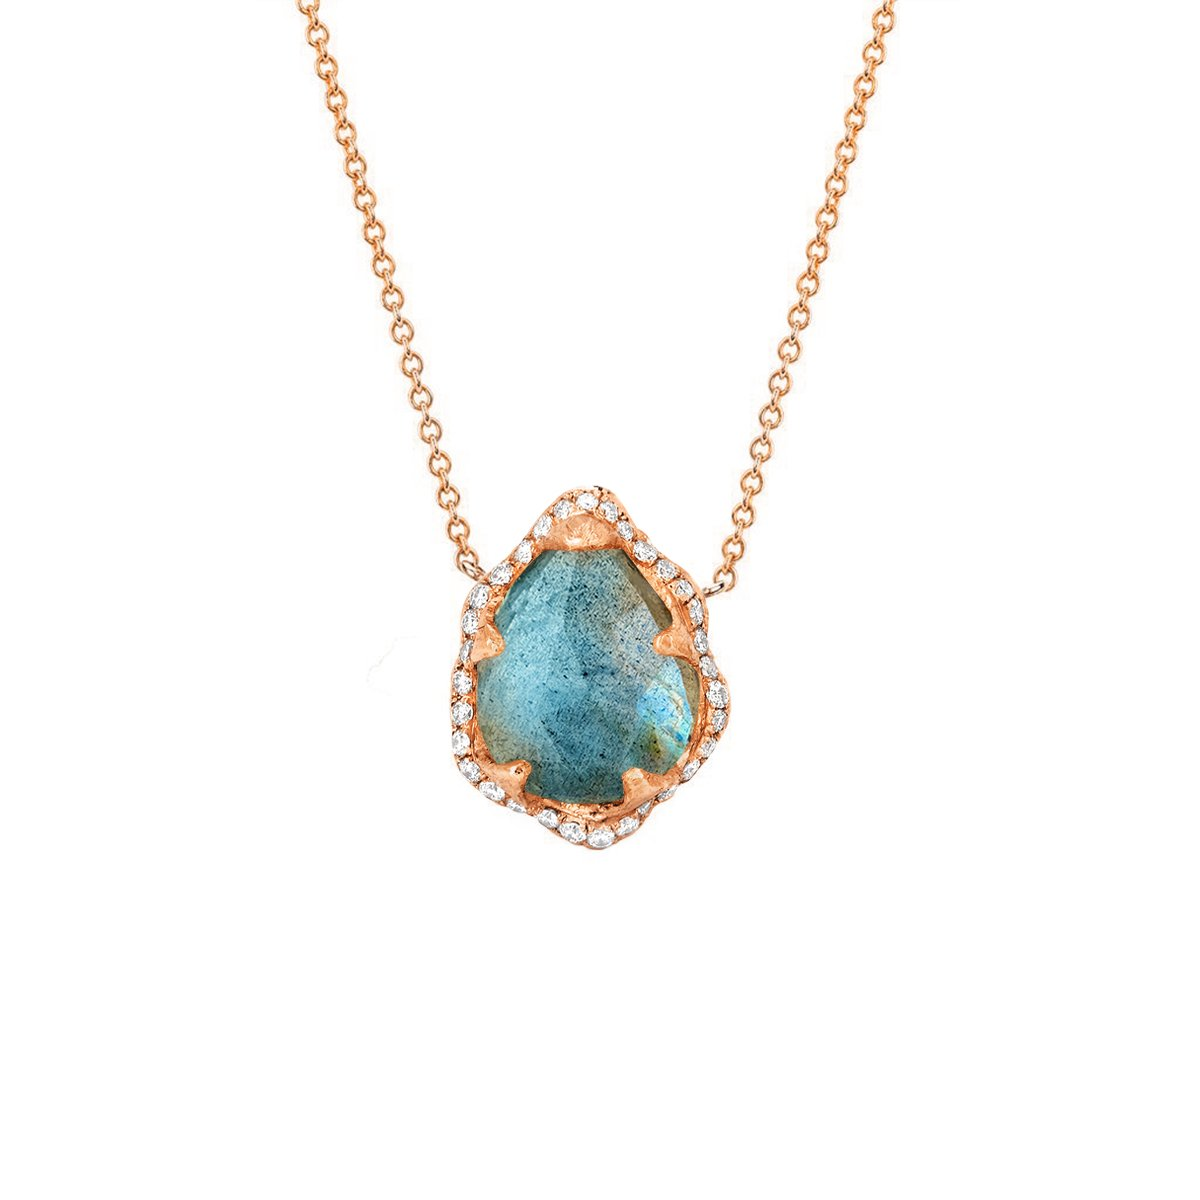 Baby Queen Water Drop Labradorite Necklace with Full Pavé Diamond Halo